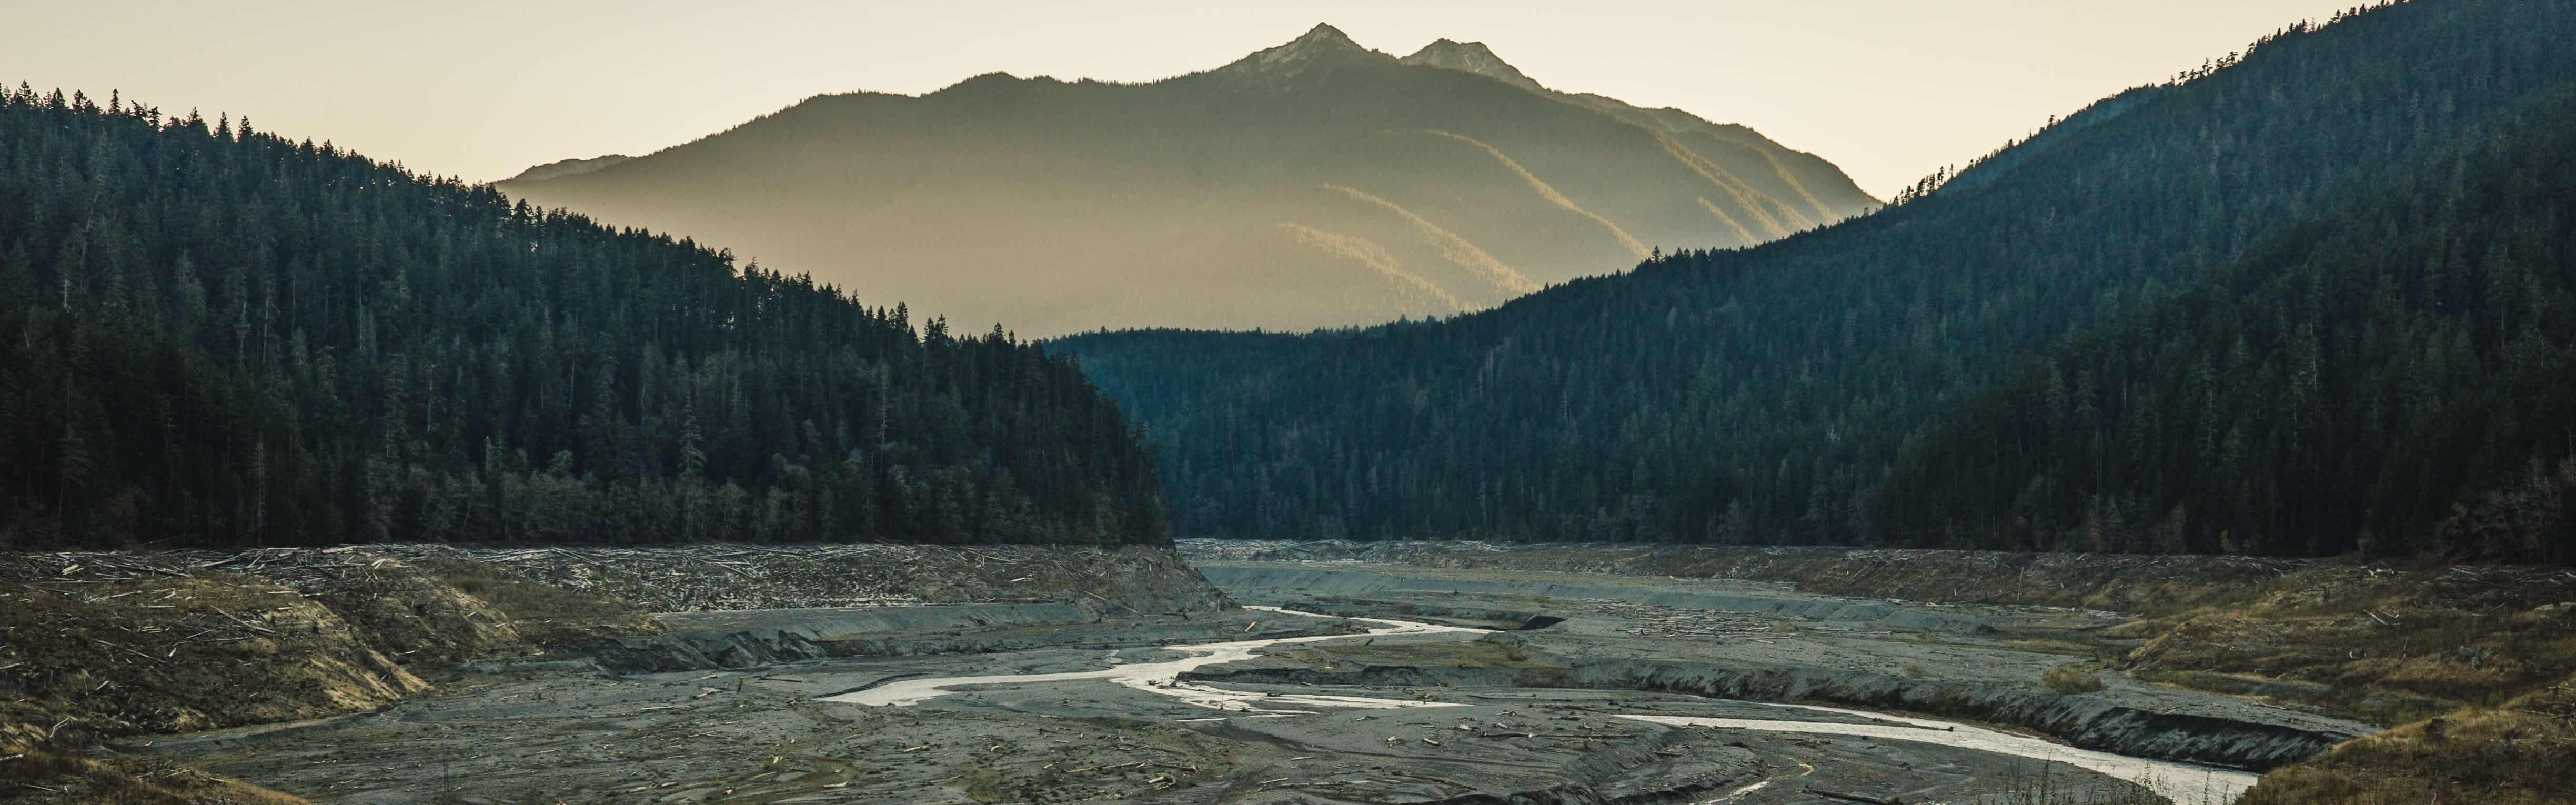 Elwha River through the Former Mills Reservoir   Photo by Nate Wilson